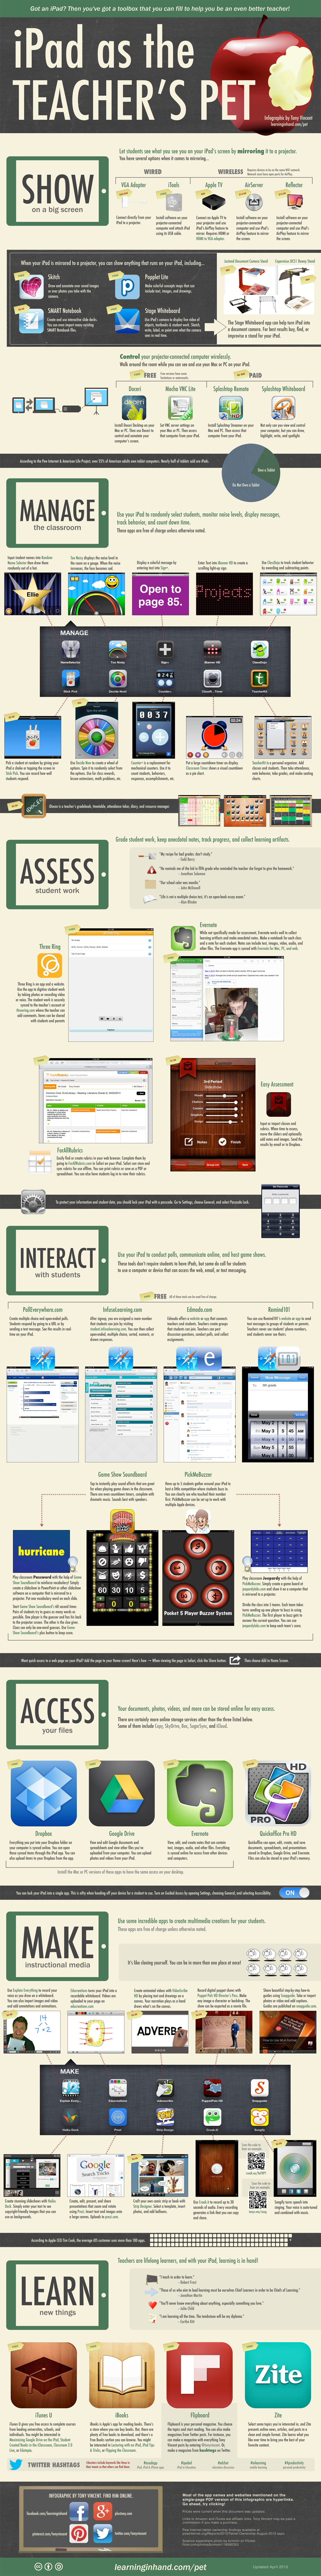 Infographic: 7 Techniques For Using iPads In The Classroom